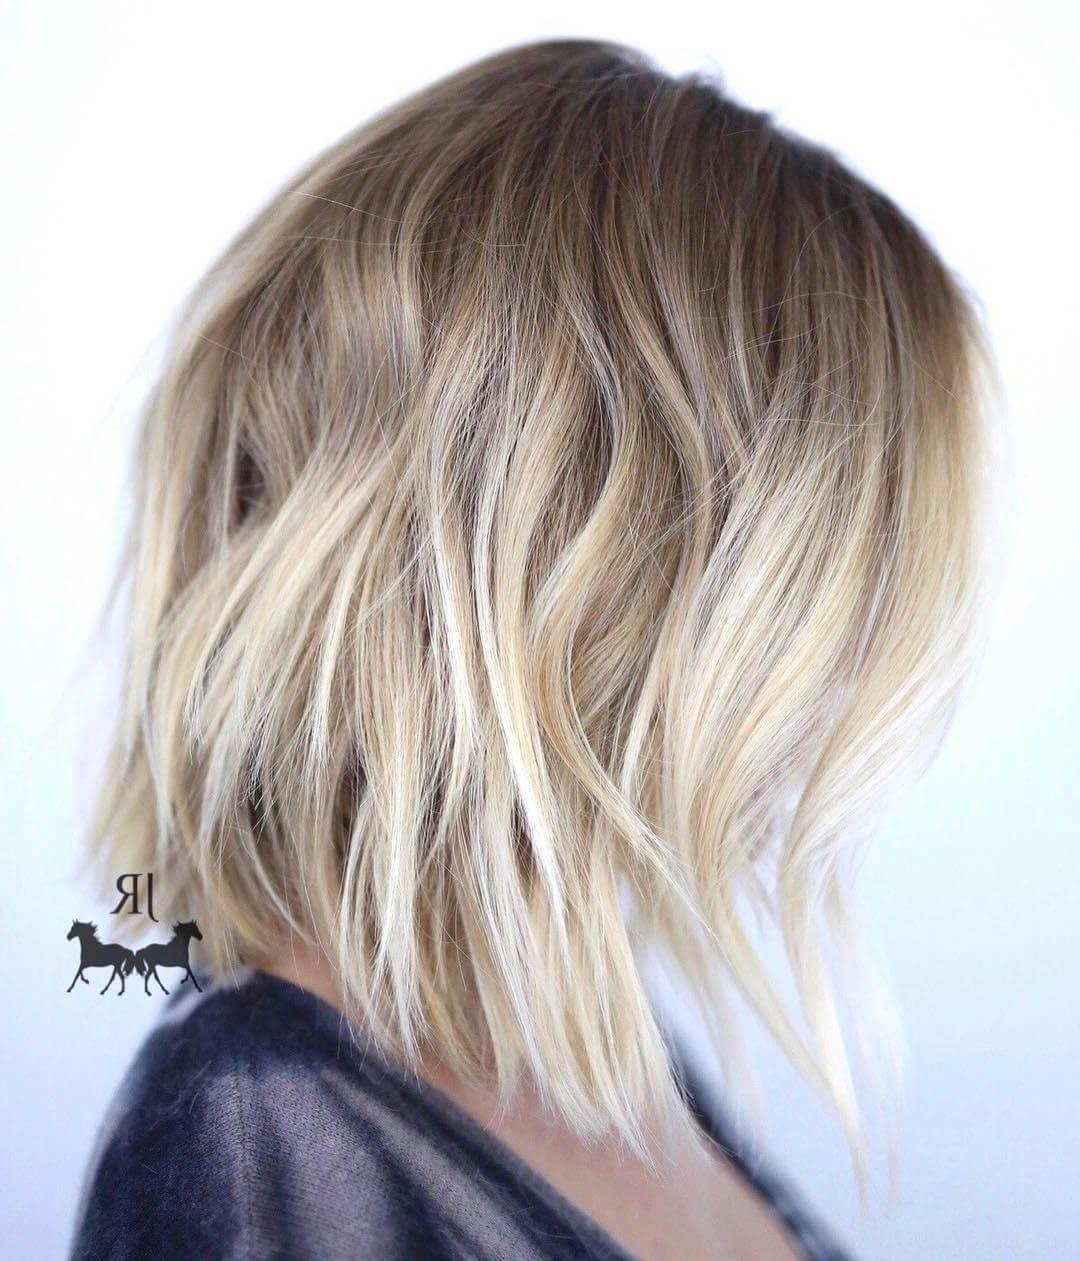 Widely Used Wavy Caramel Blonde Lob Hairstyles Inside 50 Fresh Short Blonde Hair Ideas To Update Your Style In (View 10 of 20)